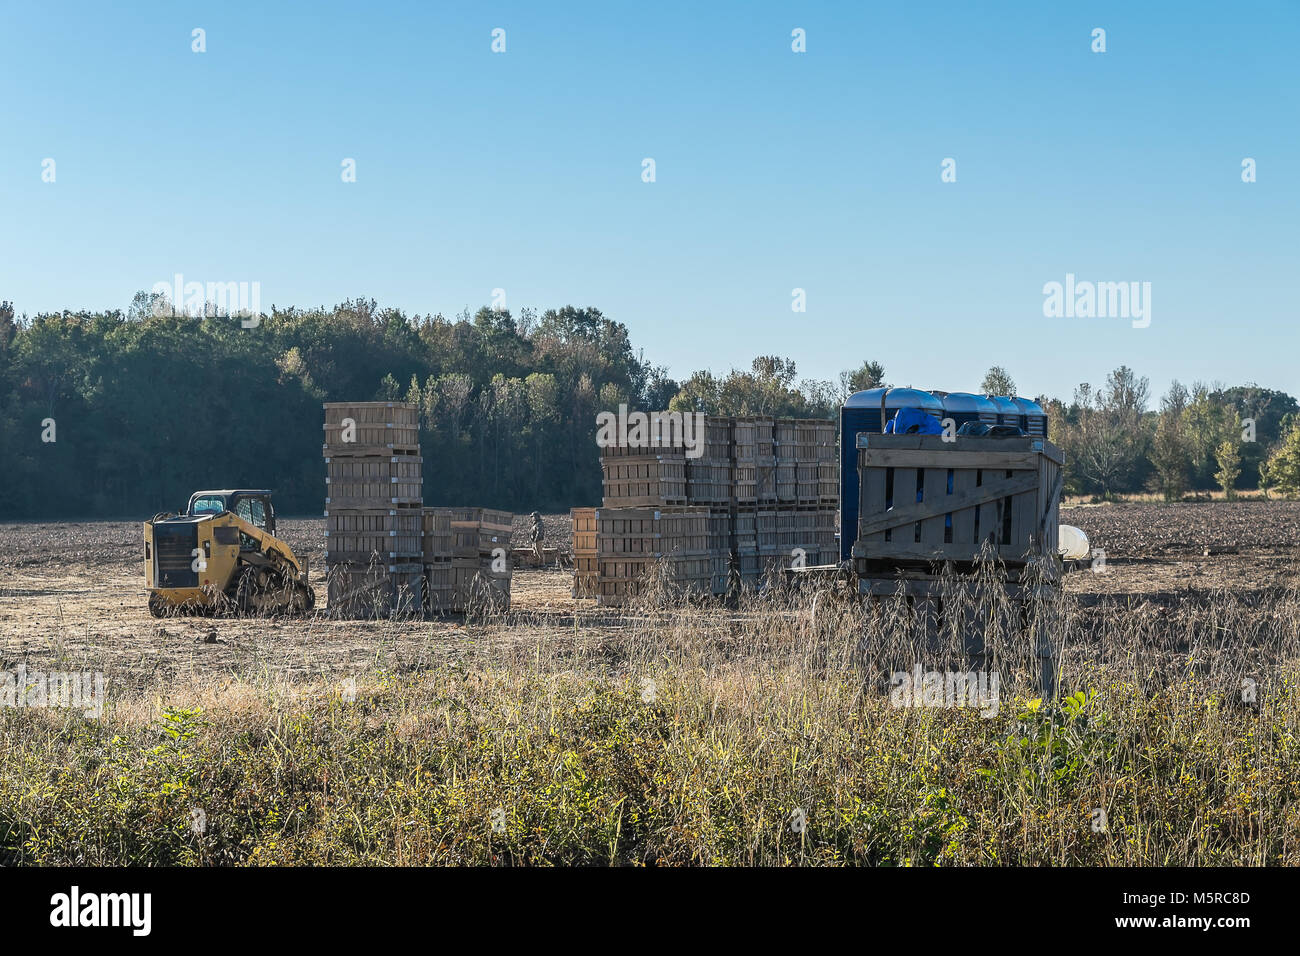 A large number of agricultural crates used for storing sweet potatoes from field to processing plant. - Stock Image